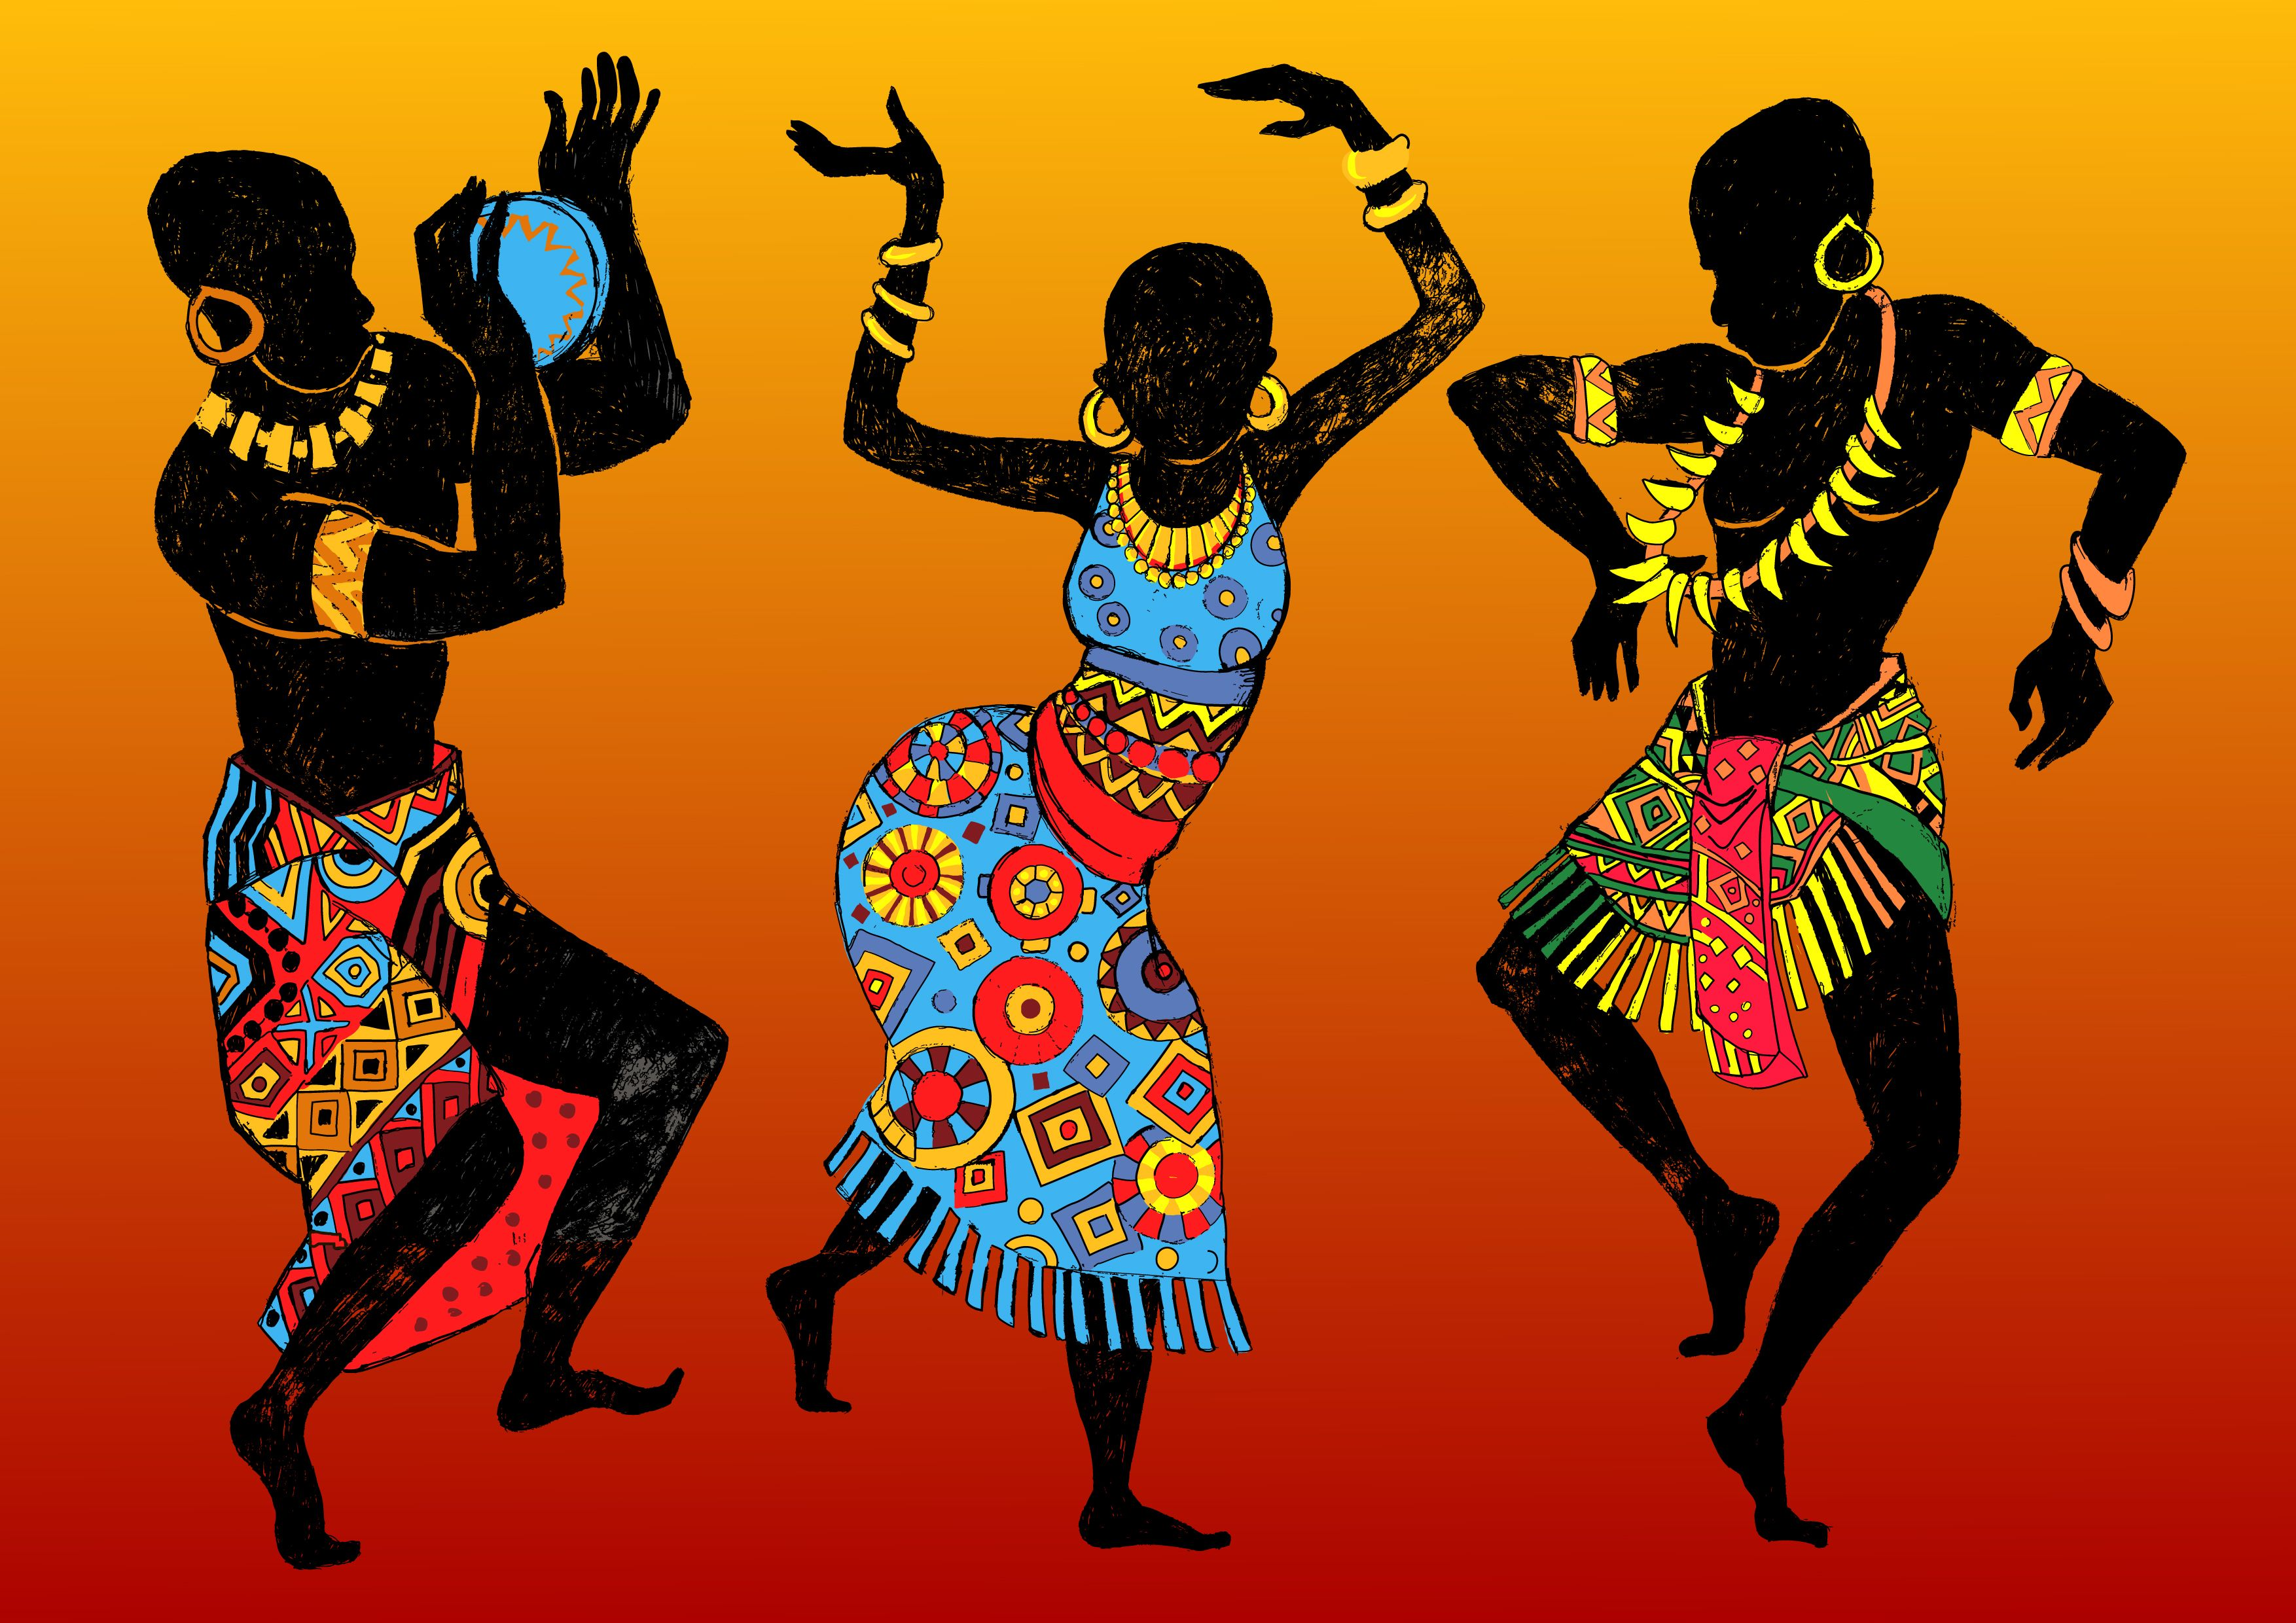 African clipart dance african. Want to enjoy a